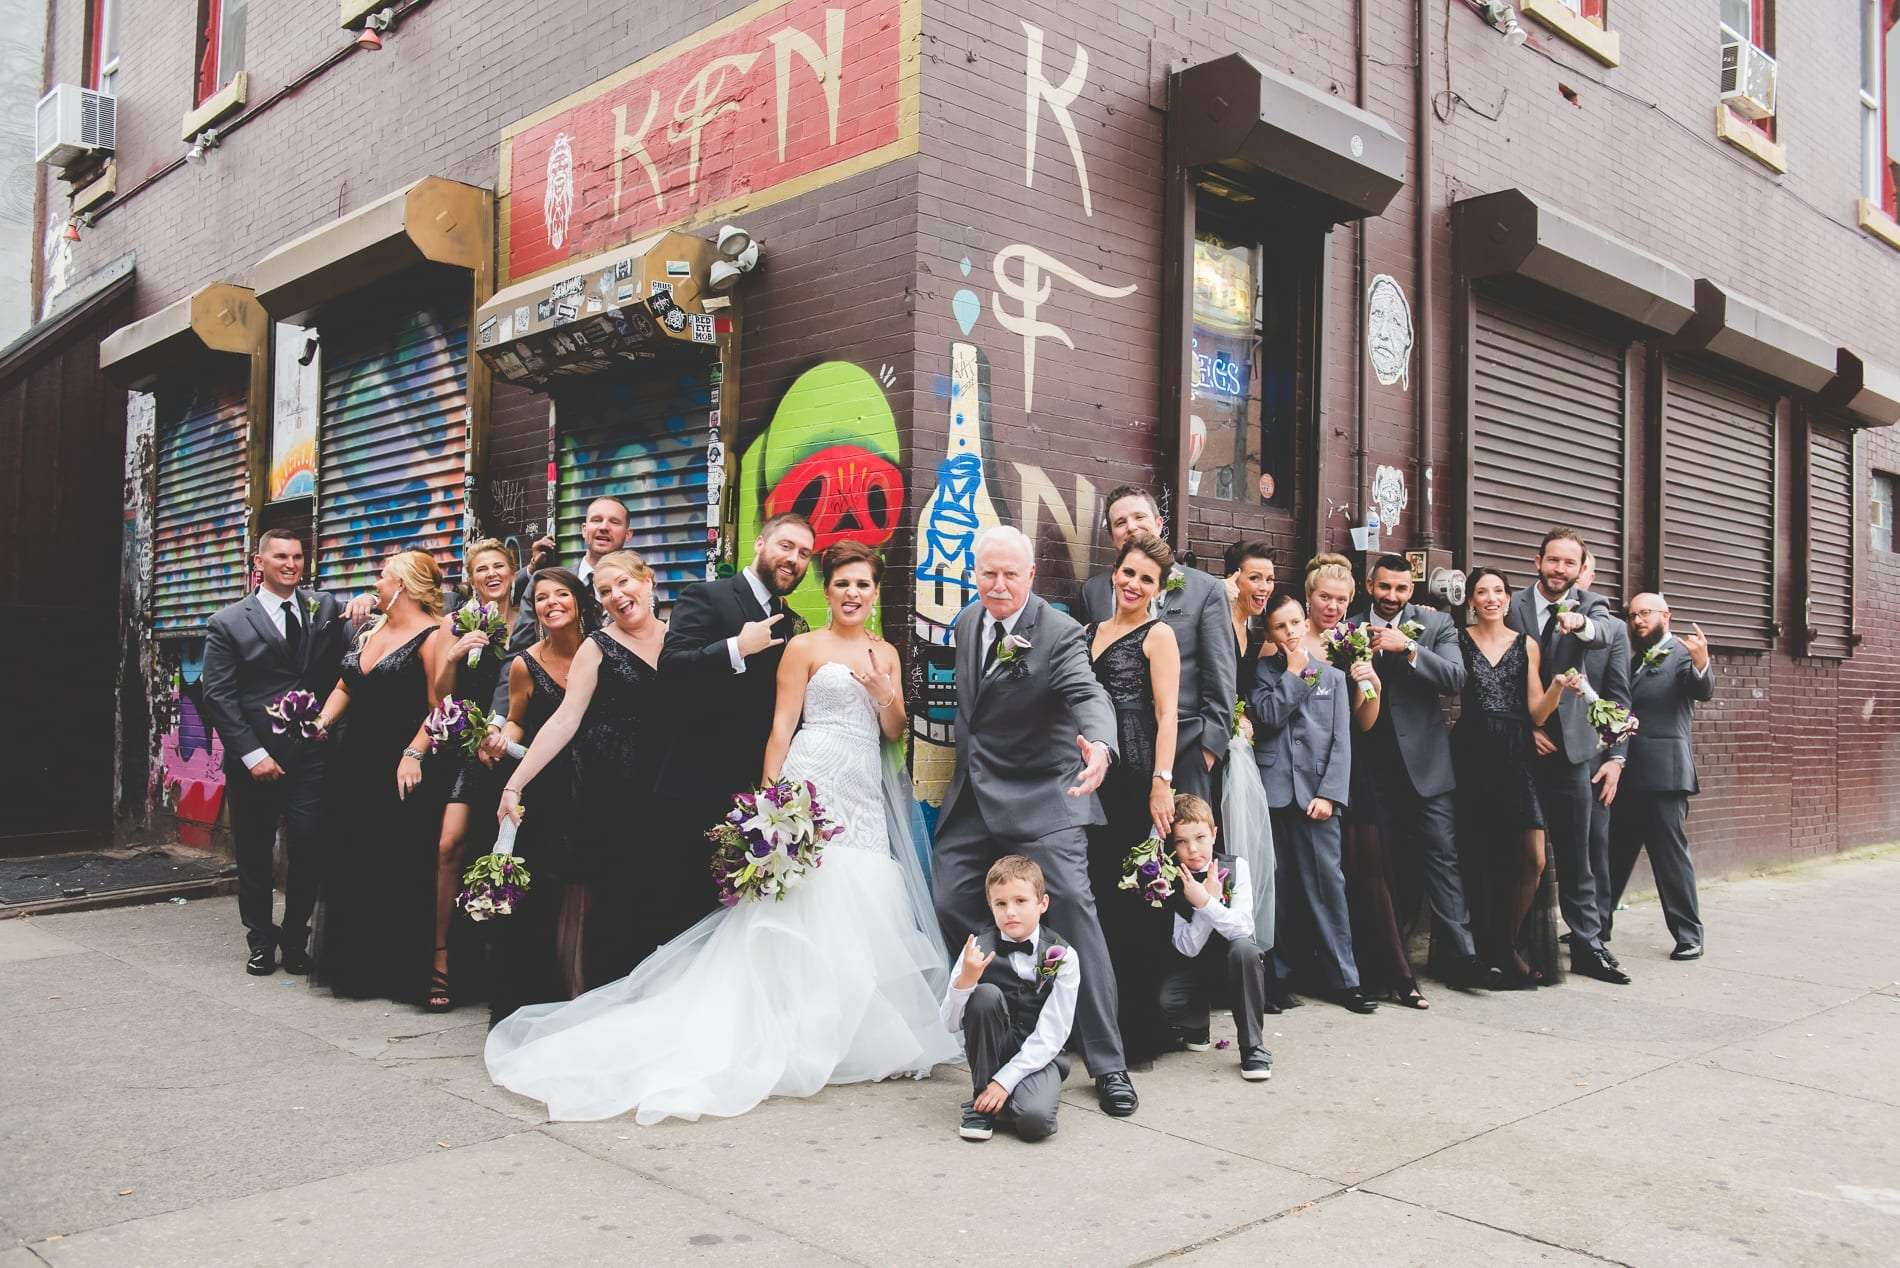 Fishtown wedding photography with wedding party